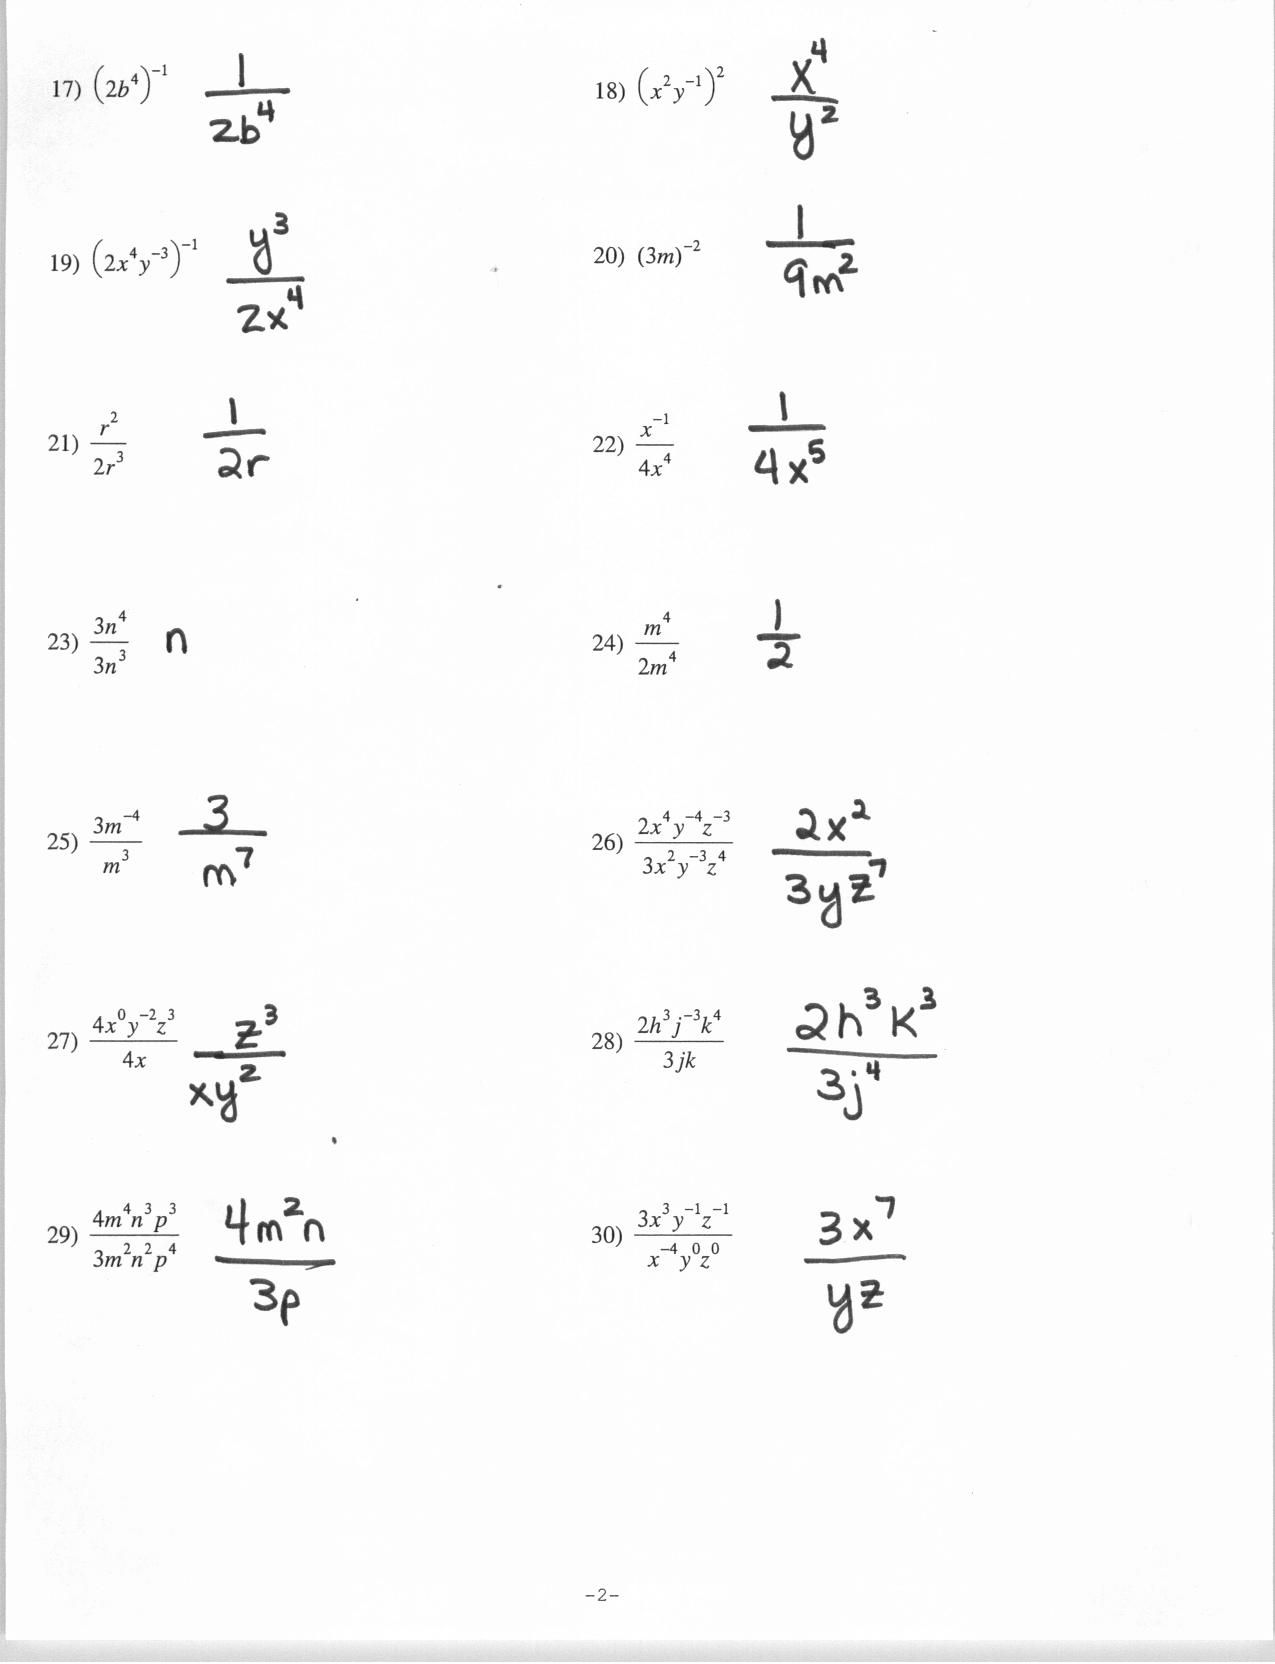 Exponents Worksheets And Answers: Exponent Worksheets With Answers   Delibertad,